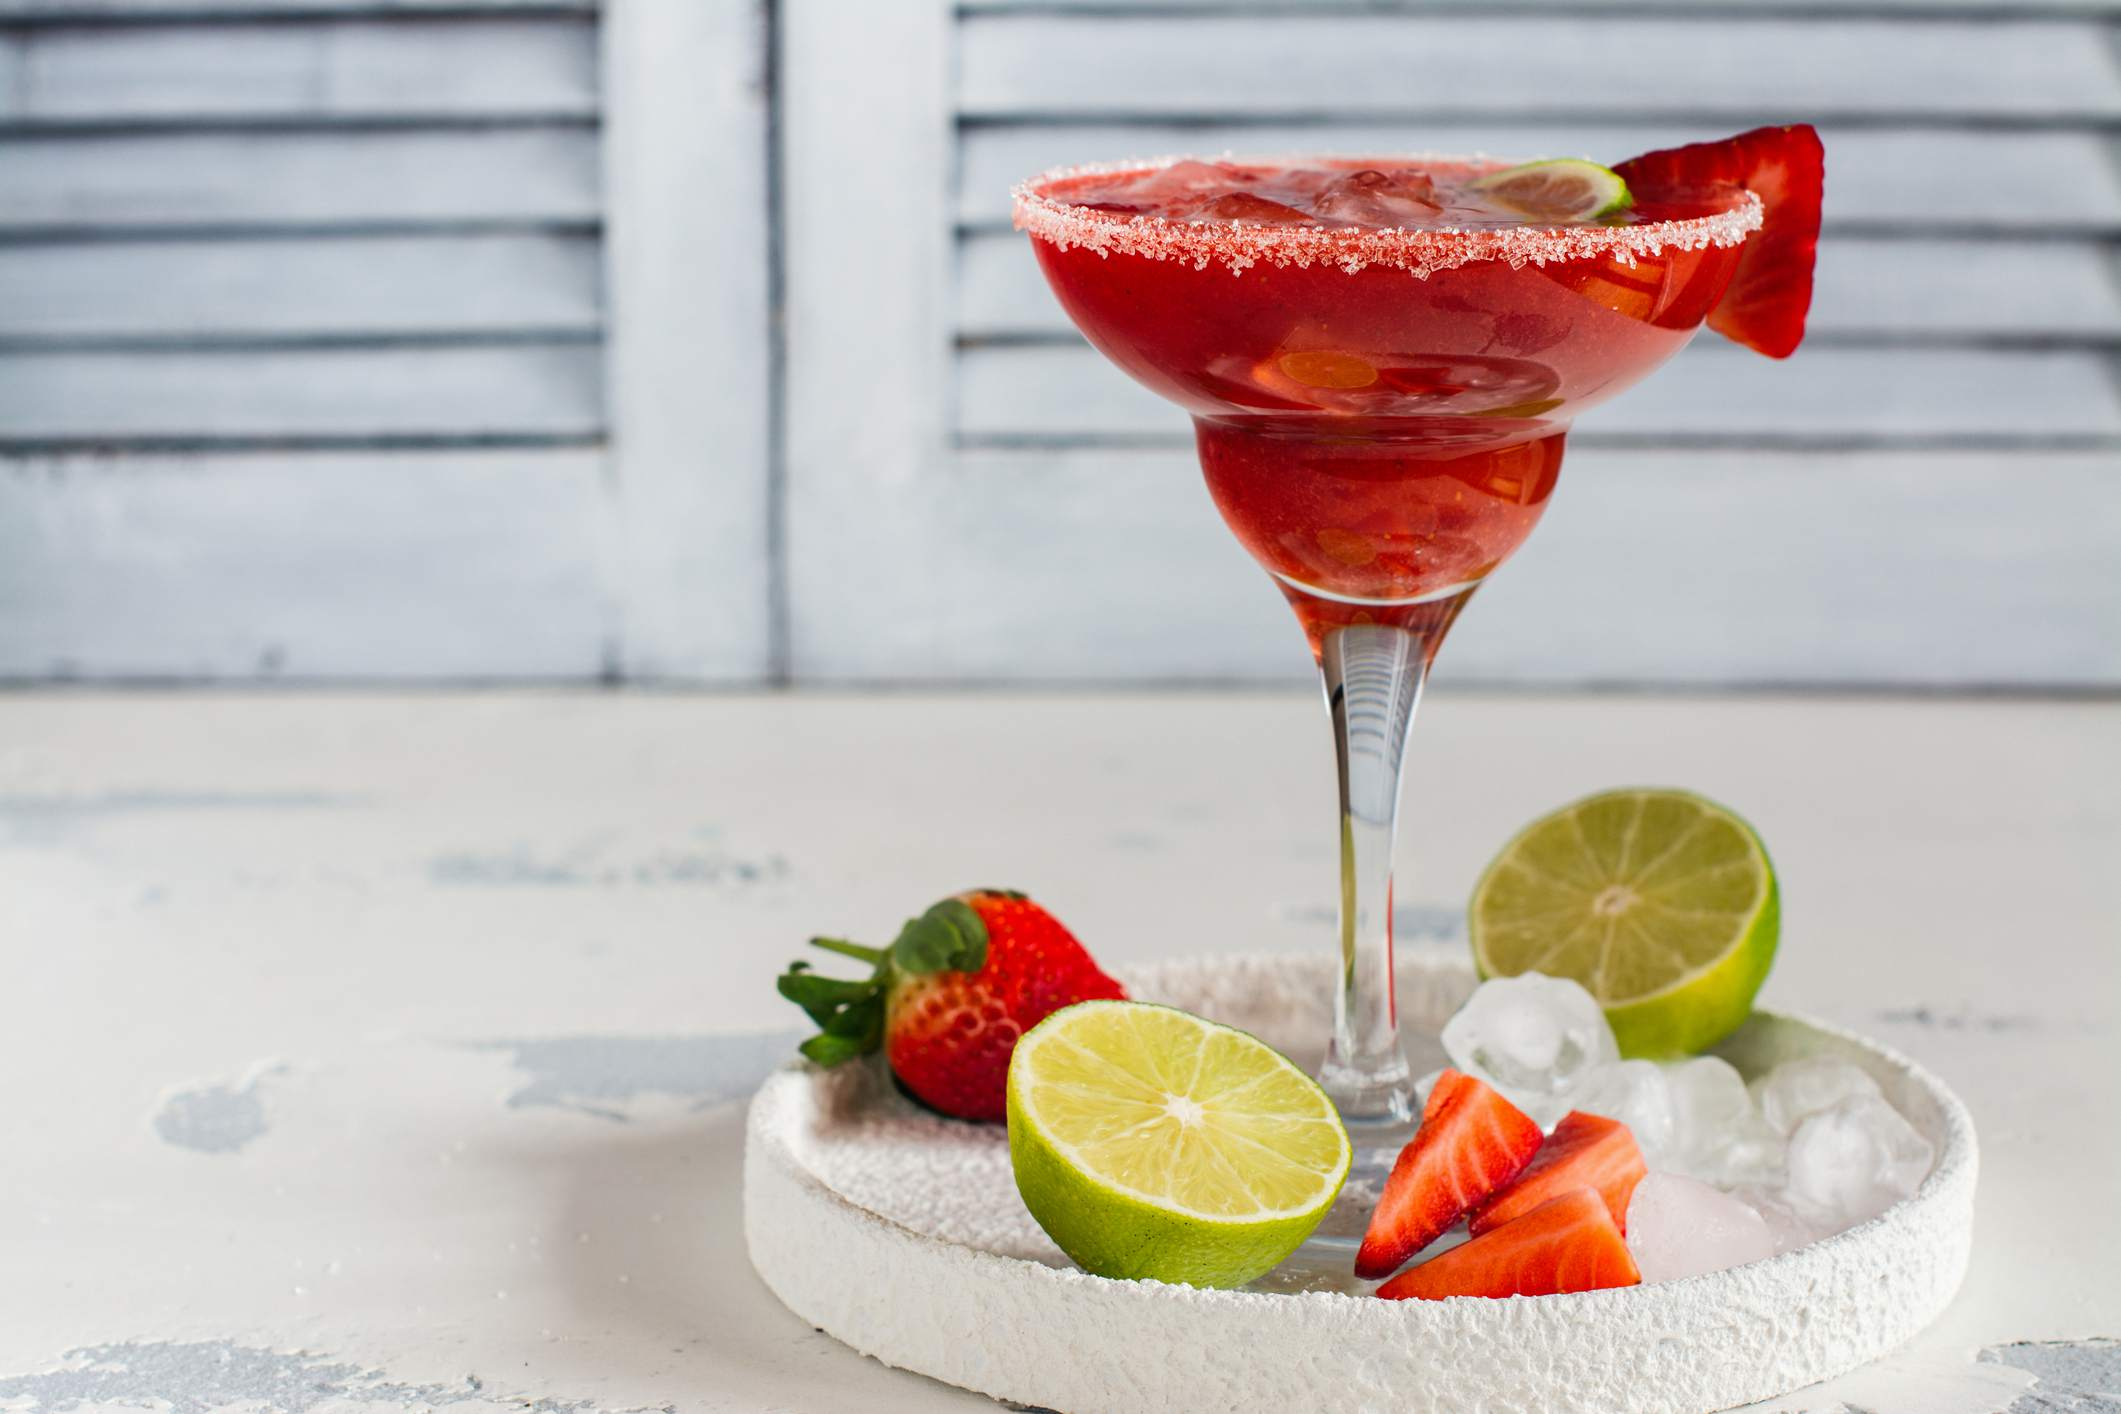 Strawberry and lime daiquiri on serving tray